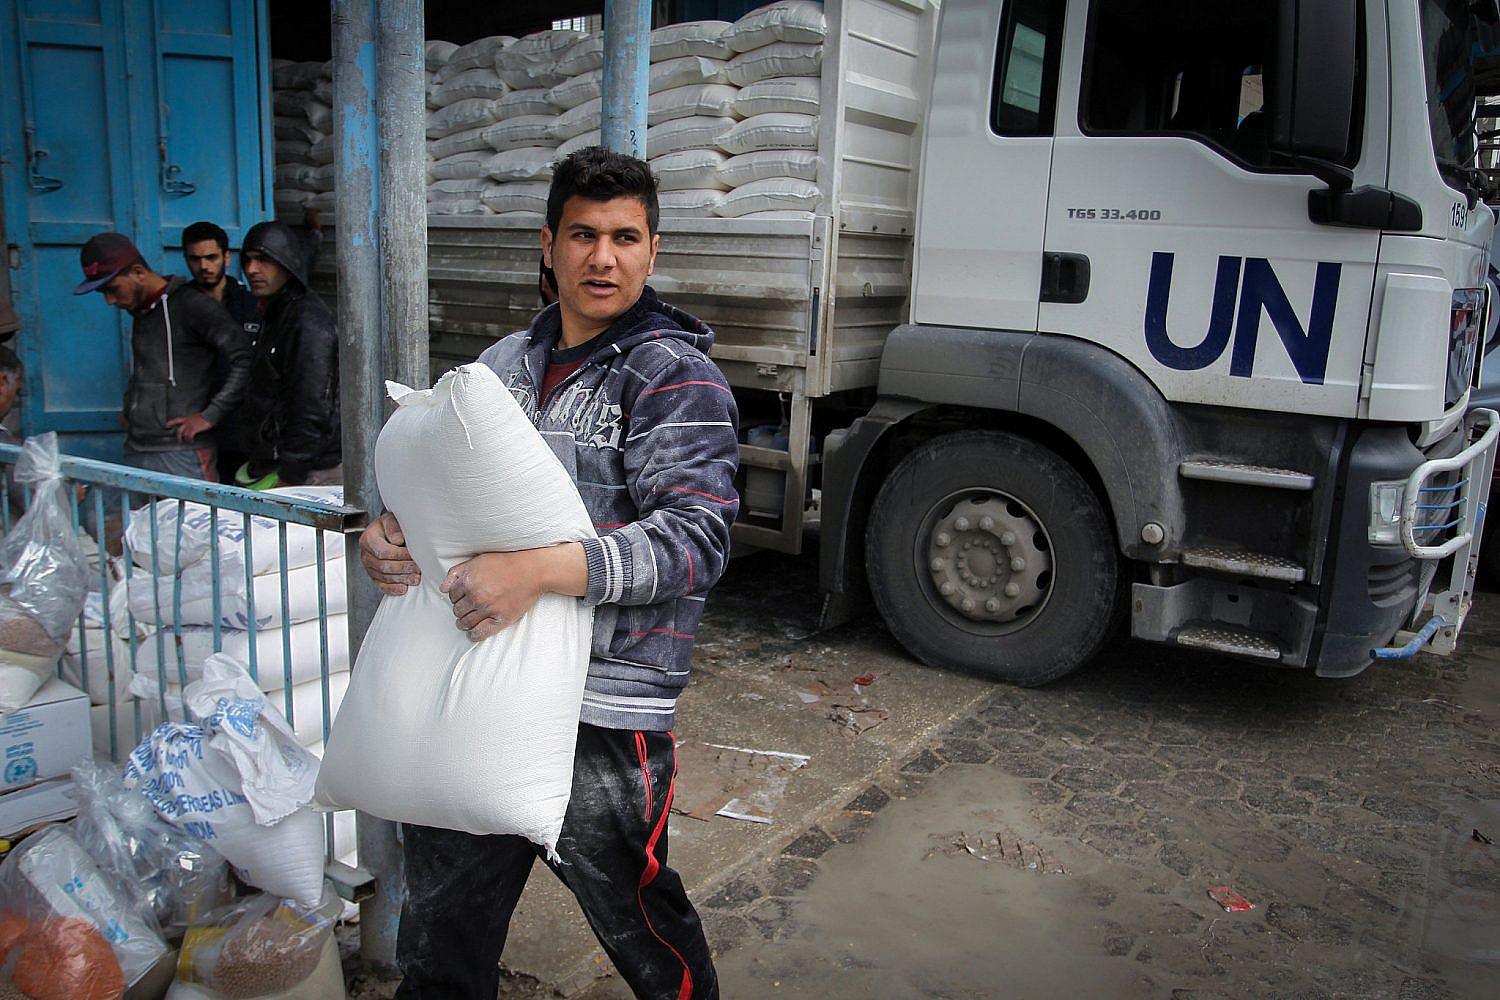 Palestinian refugees collect aid parcels at a United Nations food distribution center in Khan Younis in the southern Gaza Strip, Jan. 28, 2018. (Abed Rahim Khatib/ Flash90)